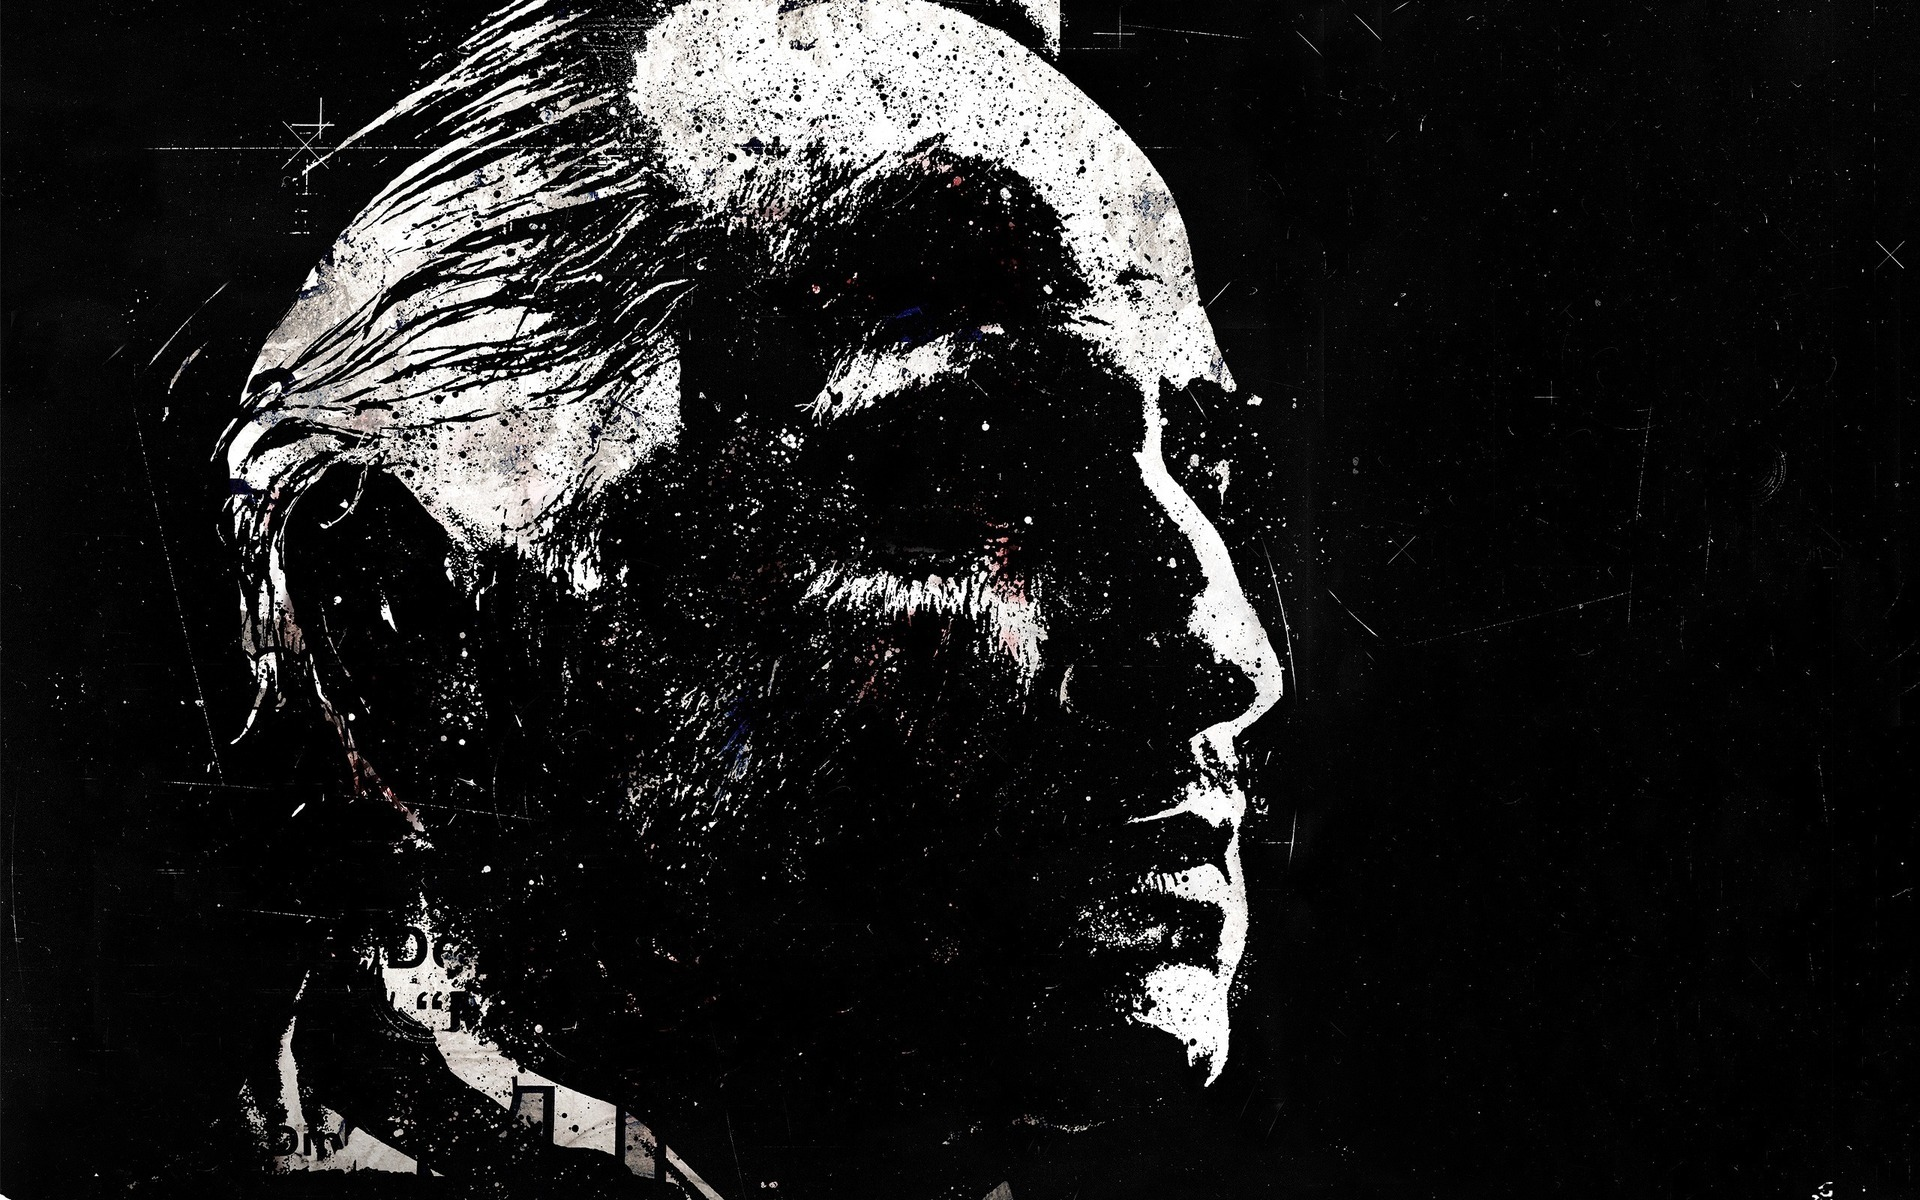 Vito Corleone   The Godfather Wallpaper 529 1920x1200